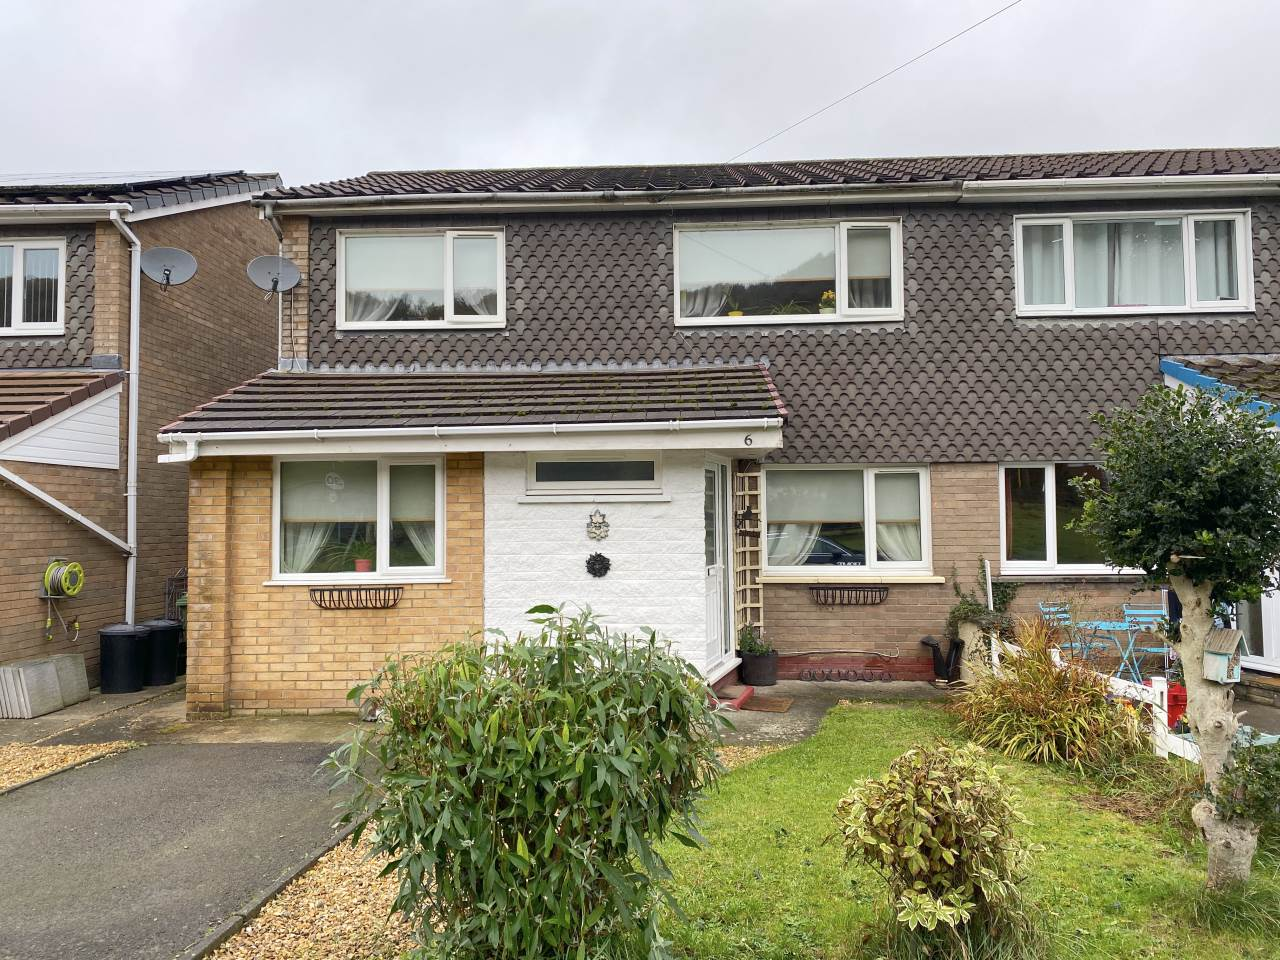 3 bed semi-detached house for sale in Cwm Aur, Llanilar - Property Image 1